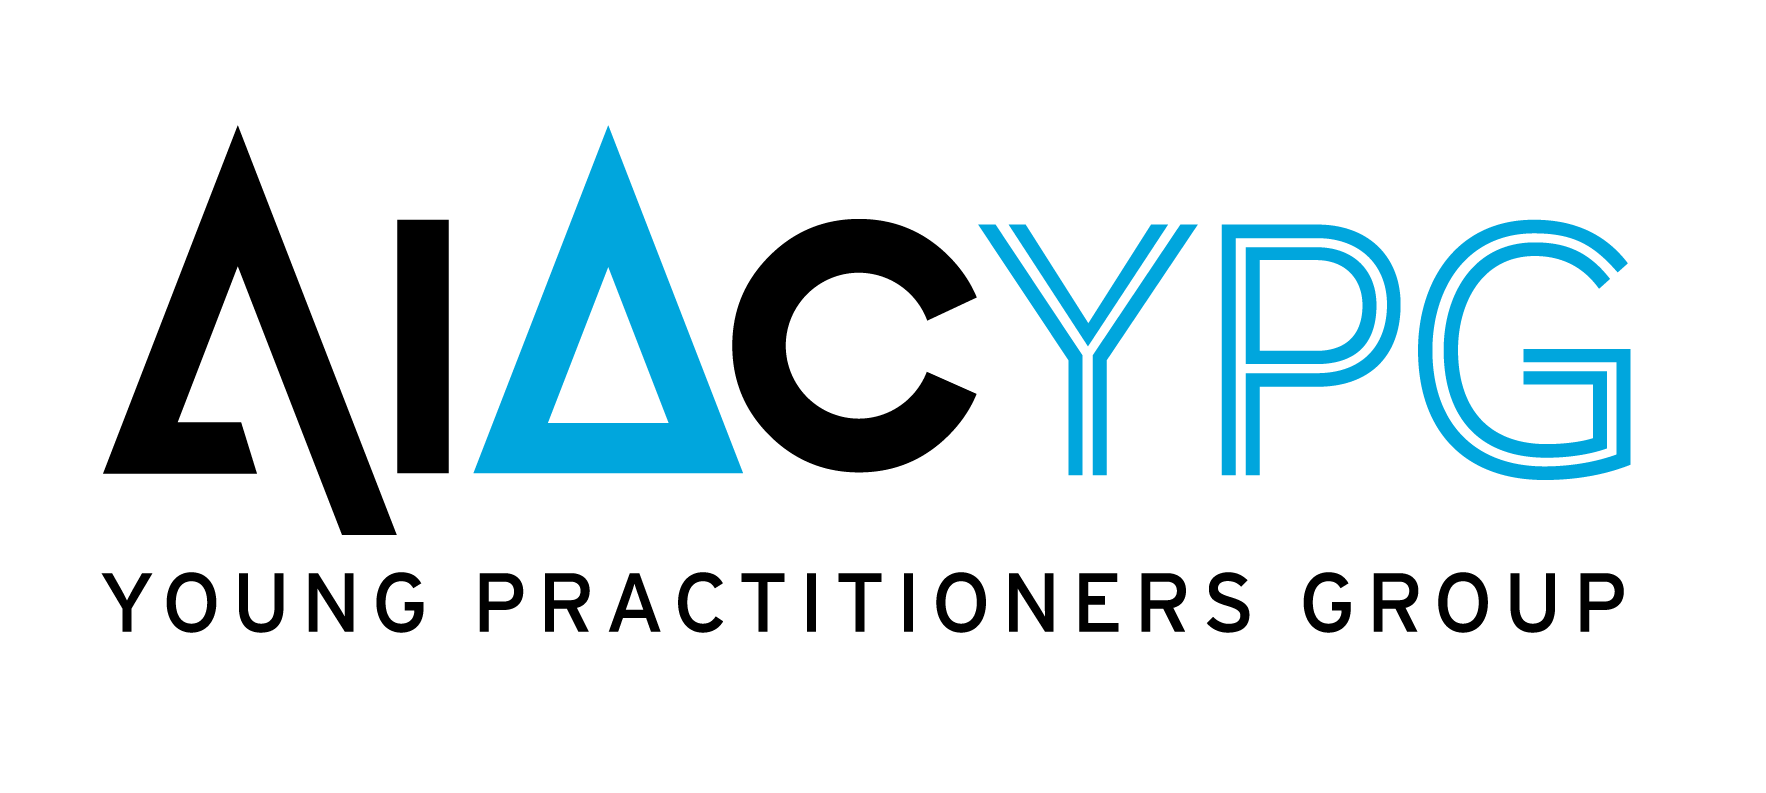 AIAC Young Practitioners Group (AIAC YPG)